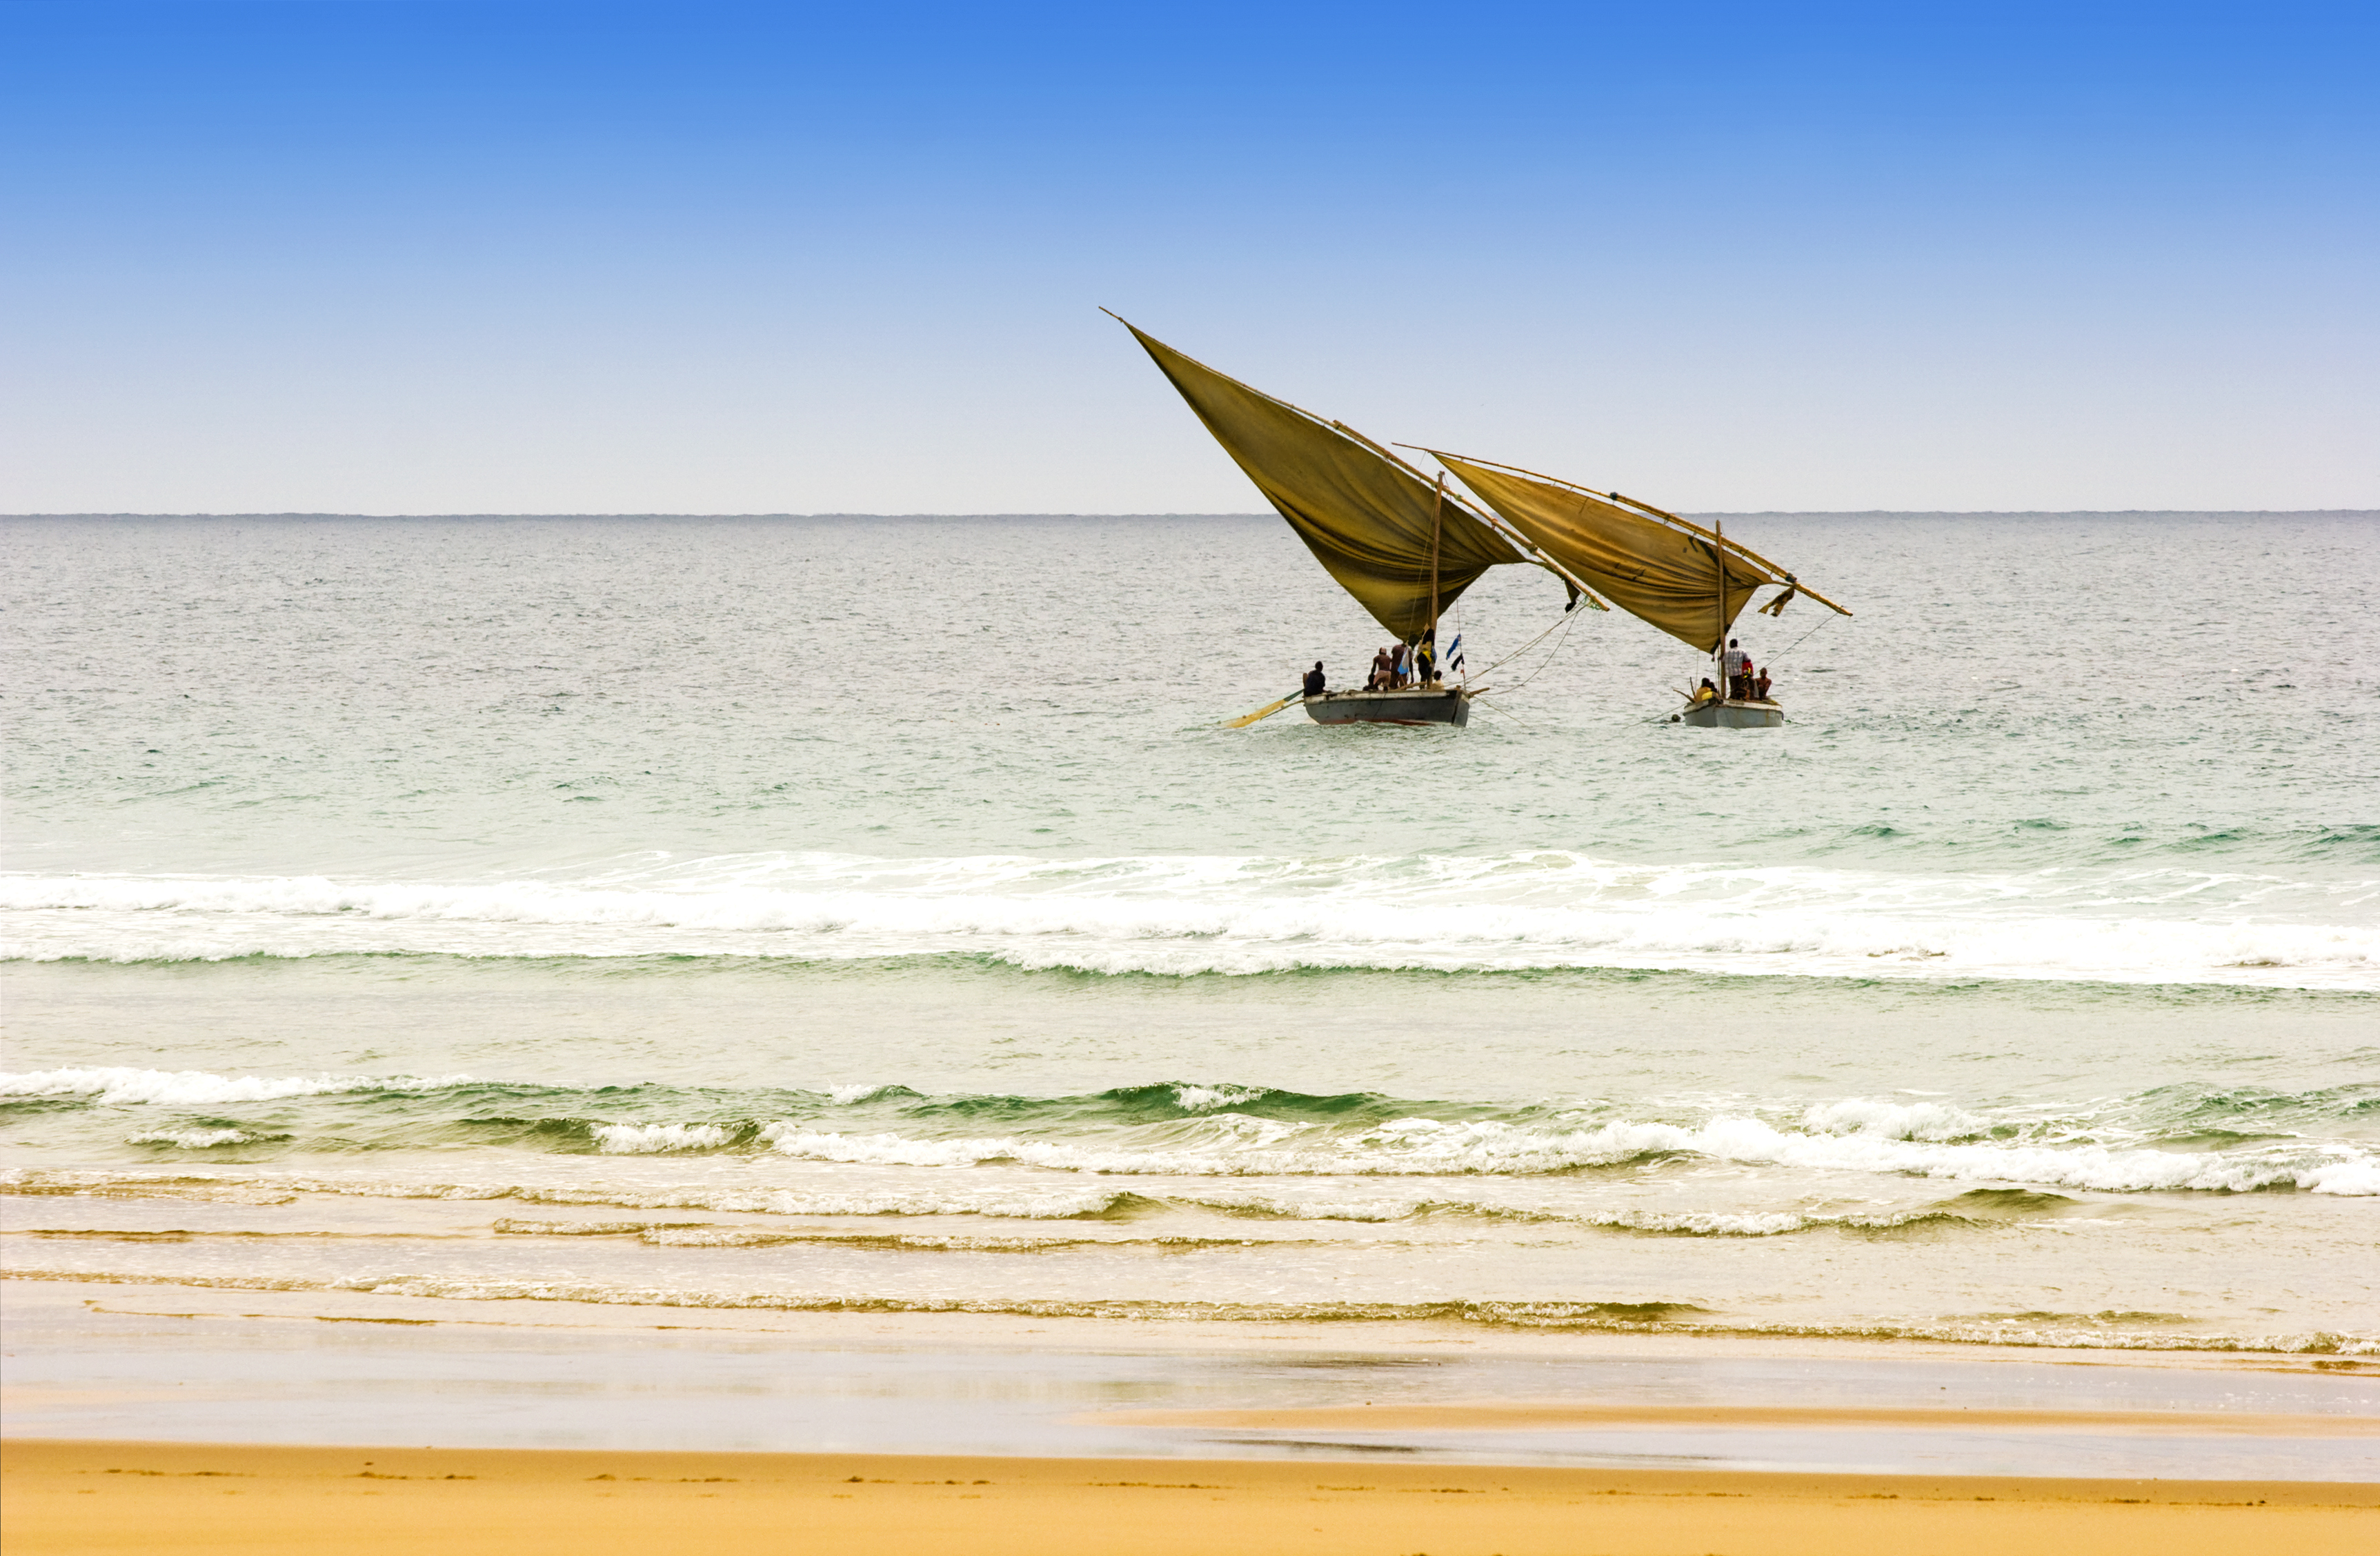 Traditional dhow boats off Mozambique